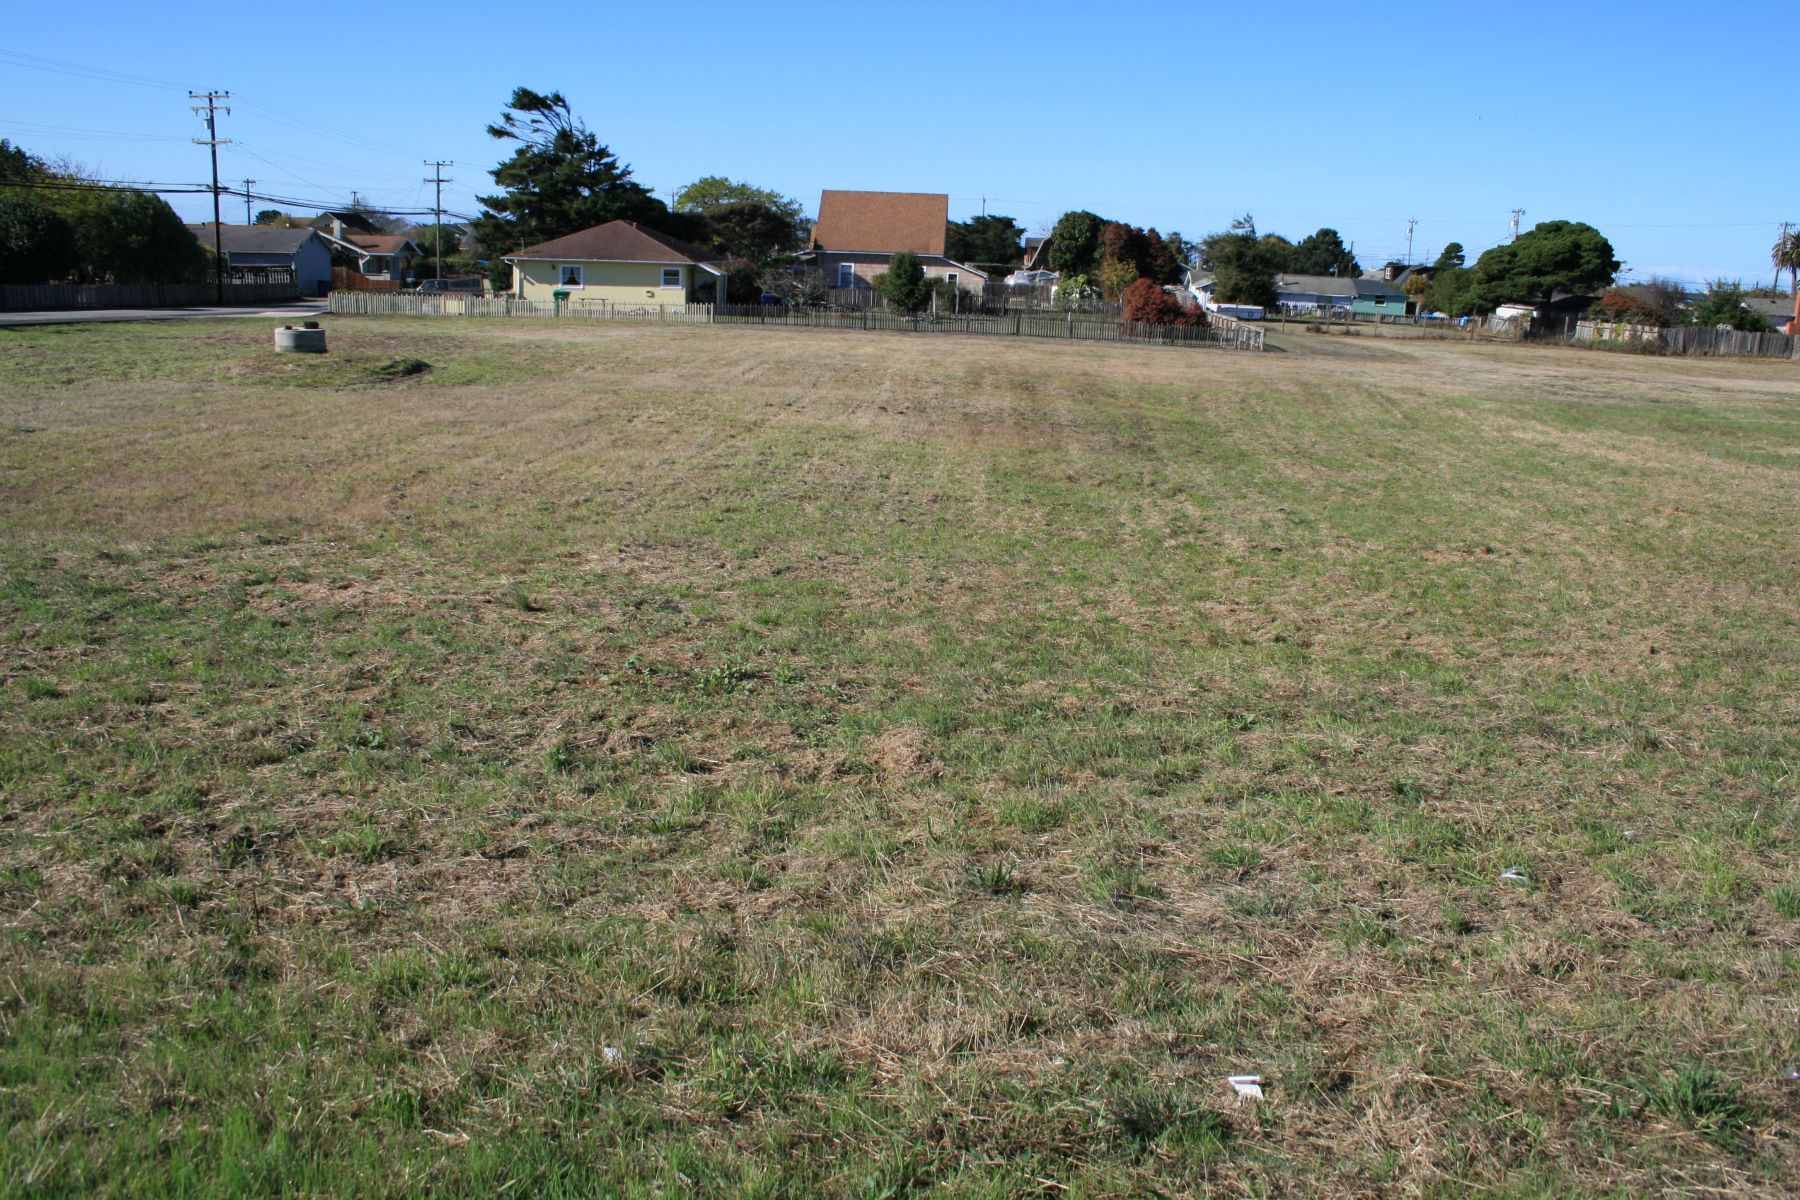 Terreno por un Venta en Corner Lot For Development 485 South Lincoln Street Fort Bragg, California 95437 Estados Unidos